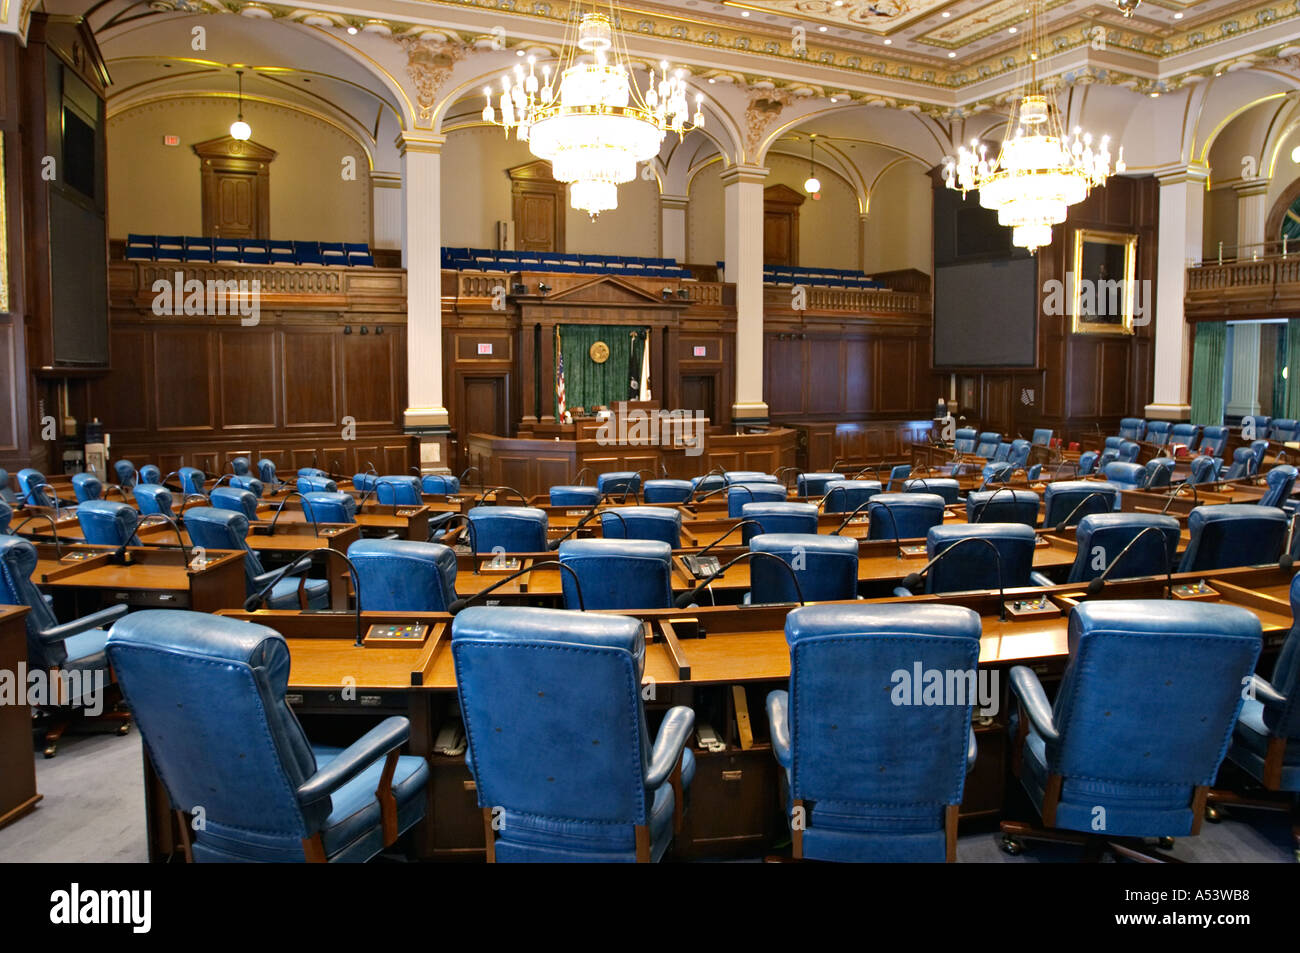 ILLINOIS Springfield Interior of State Capitol building legislative meeting room rows of desks and chairs  - Stock Image